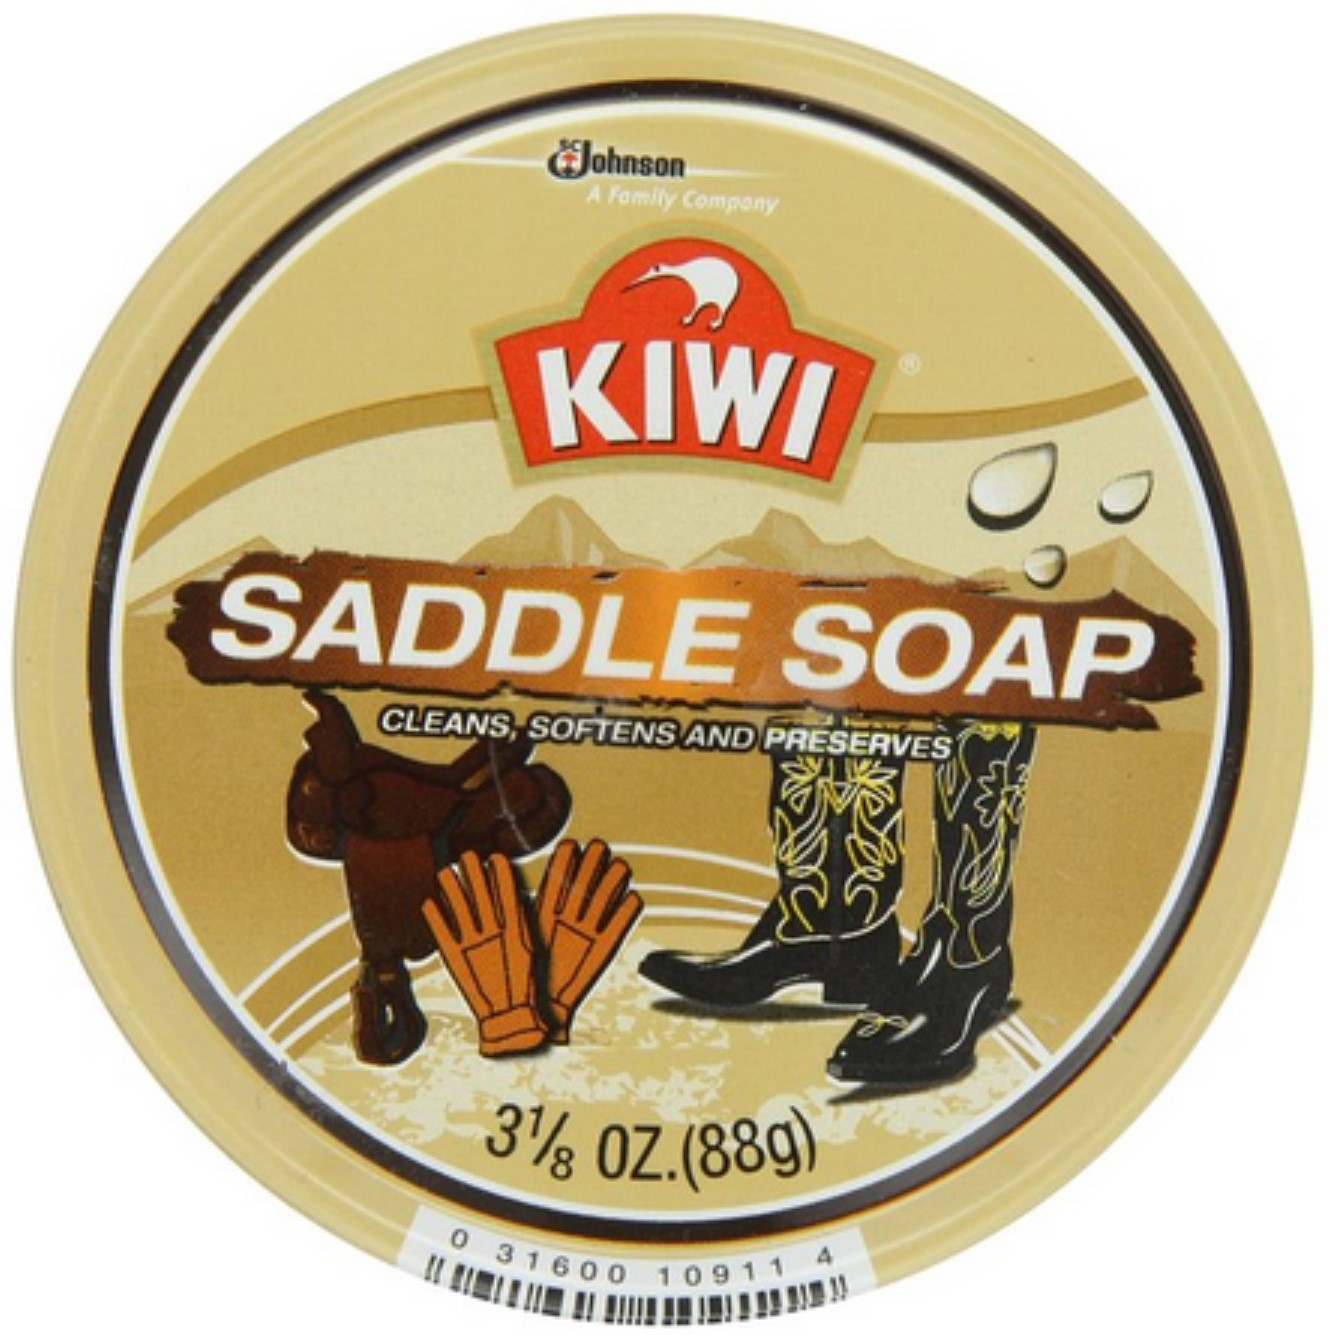 KIWI Saddle Soap 3.125 oz (Pack of 4)